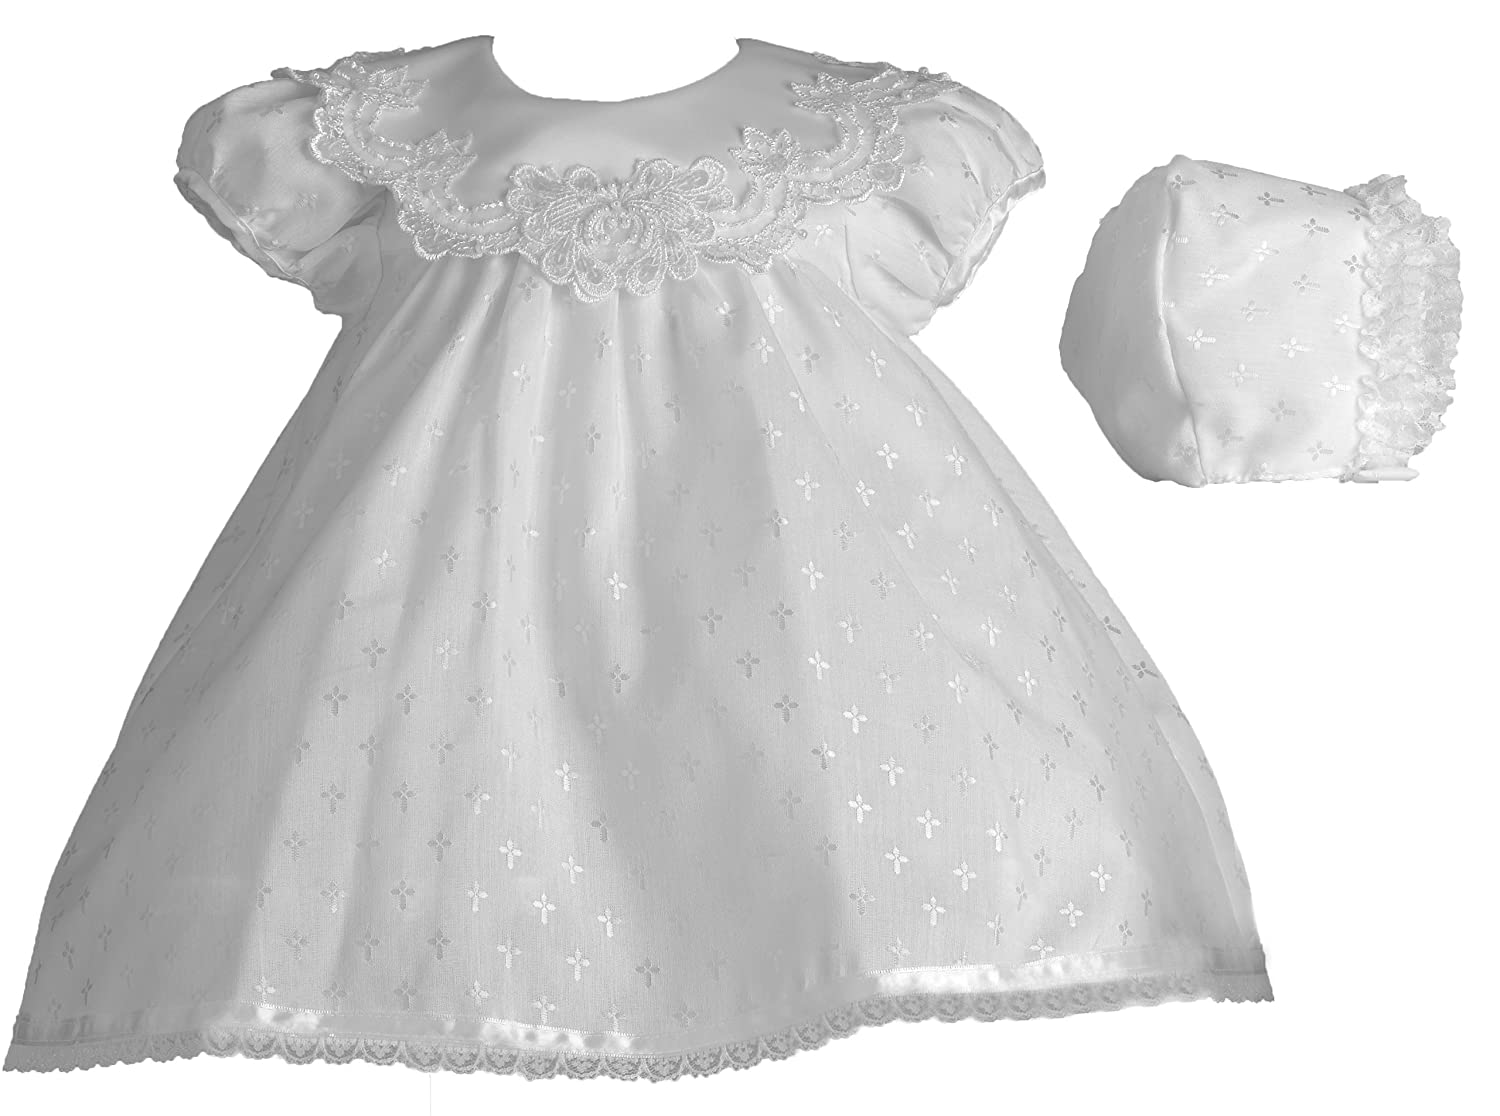 Lauren Madison Baby-Girls Newborn Cotton Cross Embroidered Dress Gown Outfit 3172